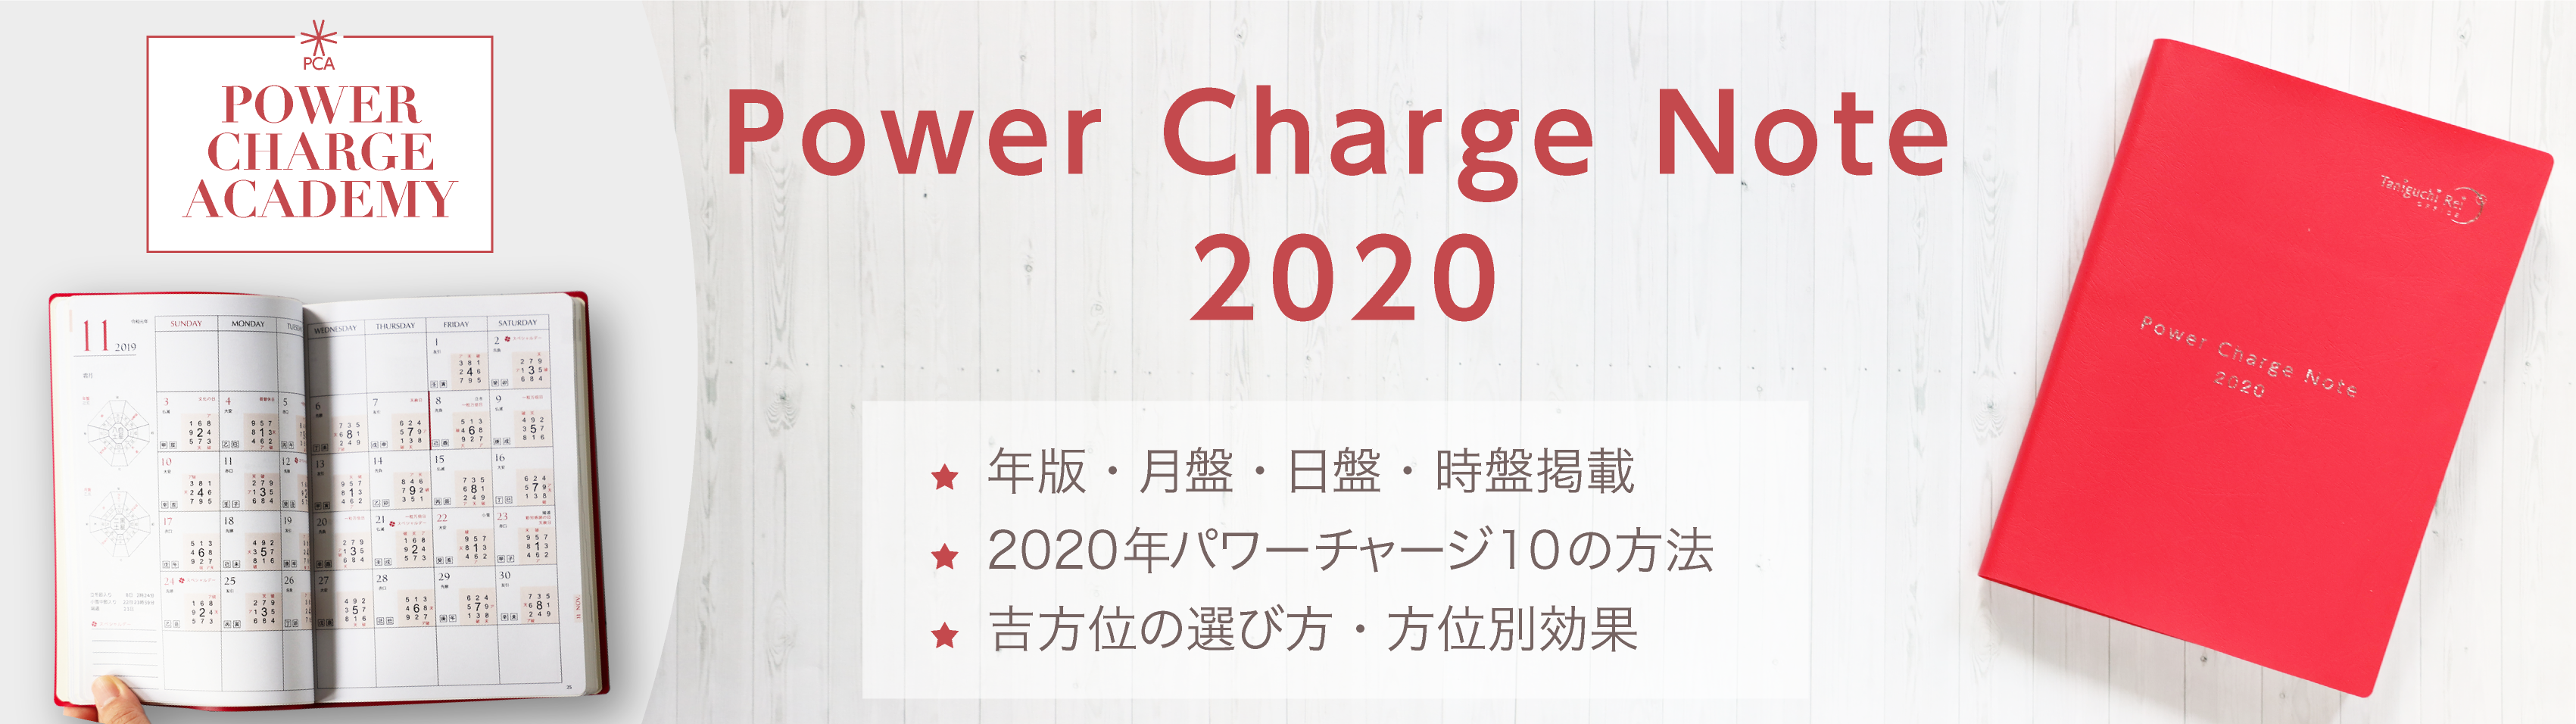 Power  Charge Note 2020